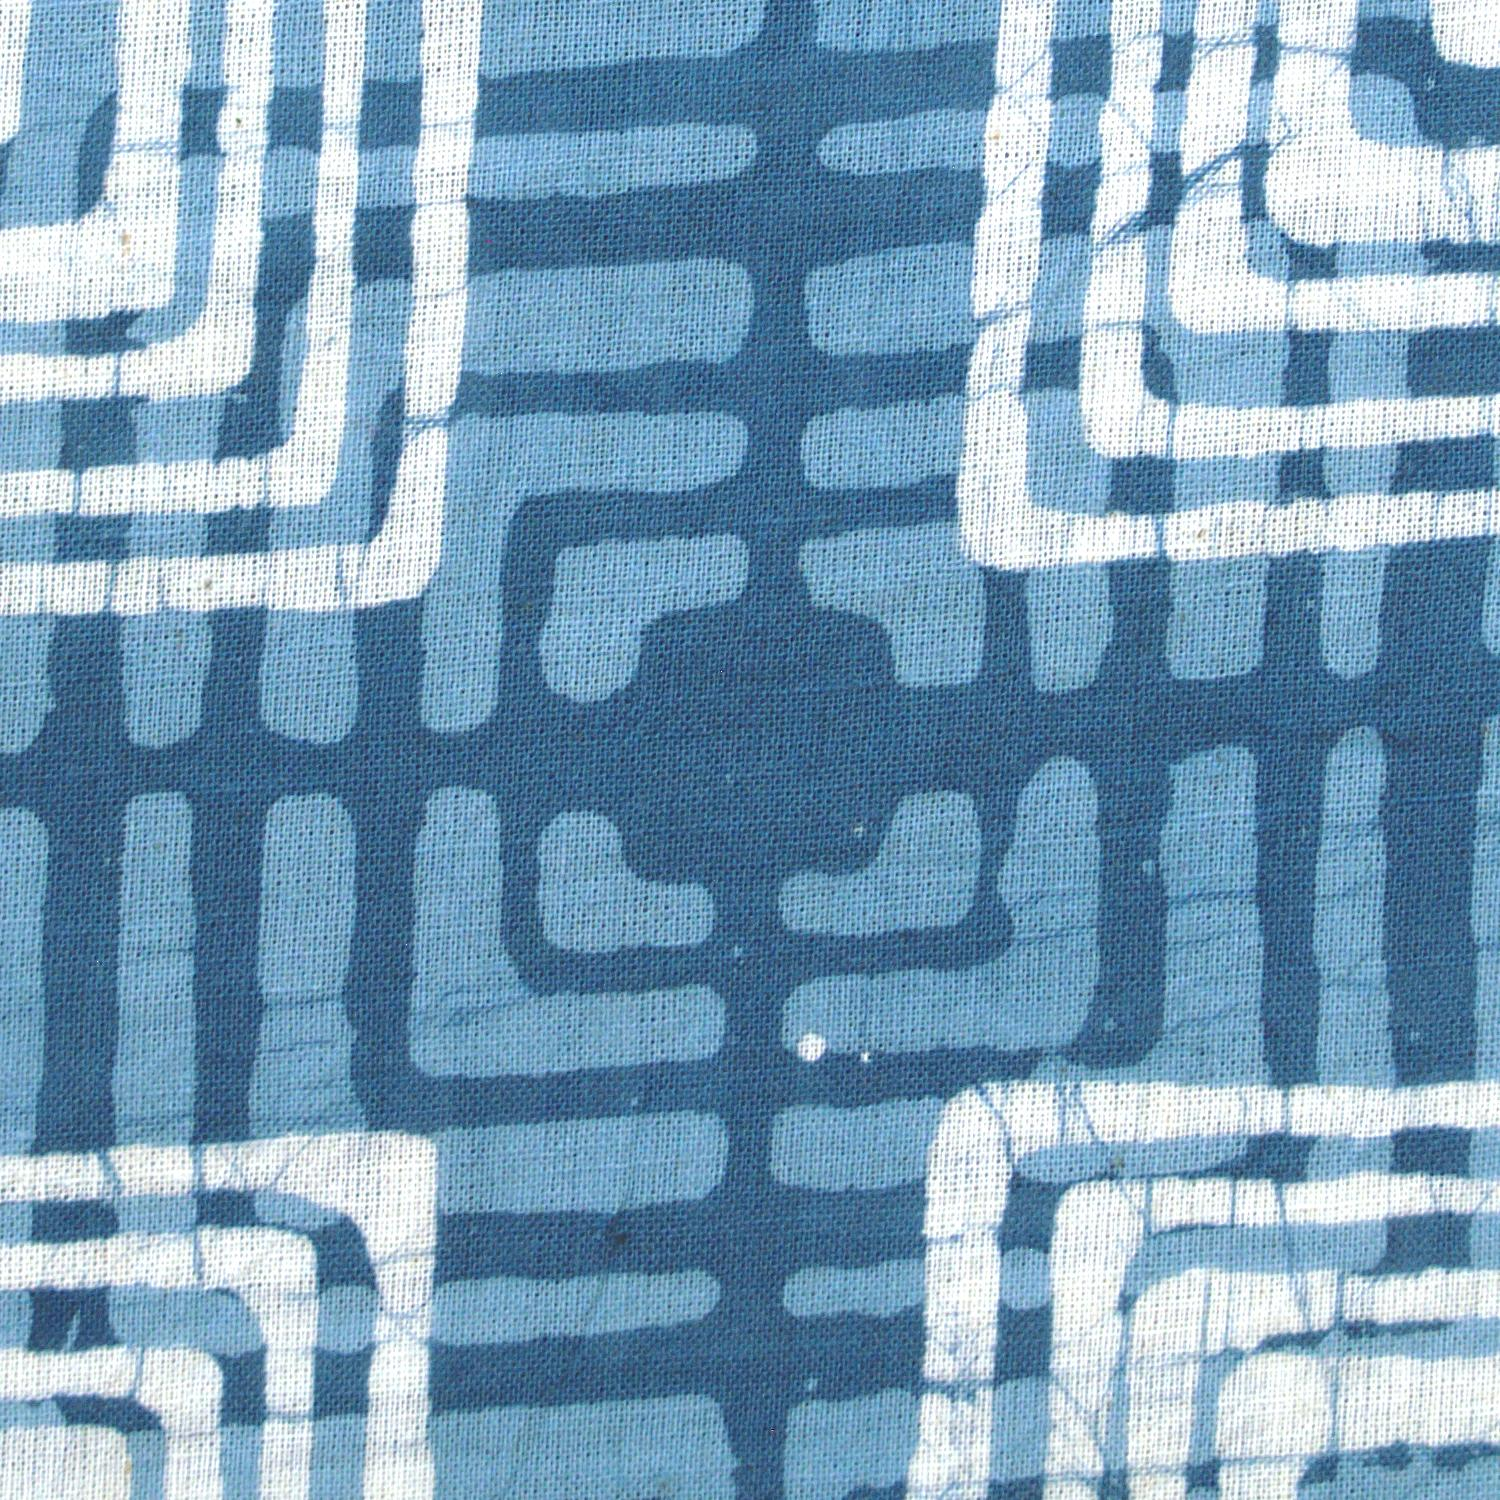 4 - SHA11 - 100% Block-Printed Batik Cotton Fabric From India - Batik - Blue Mirage - Close Up